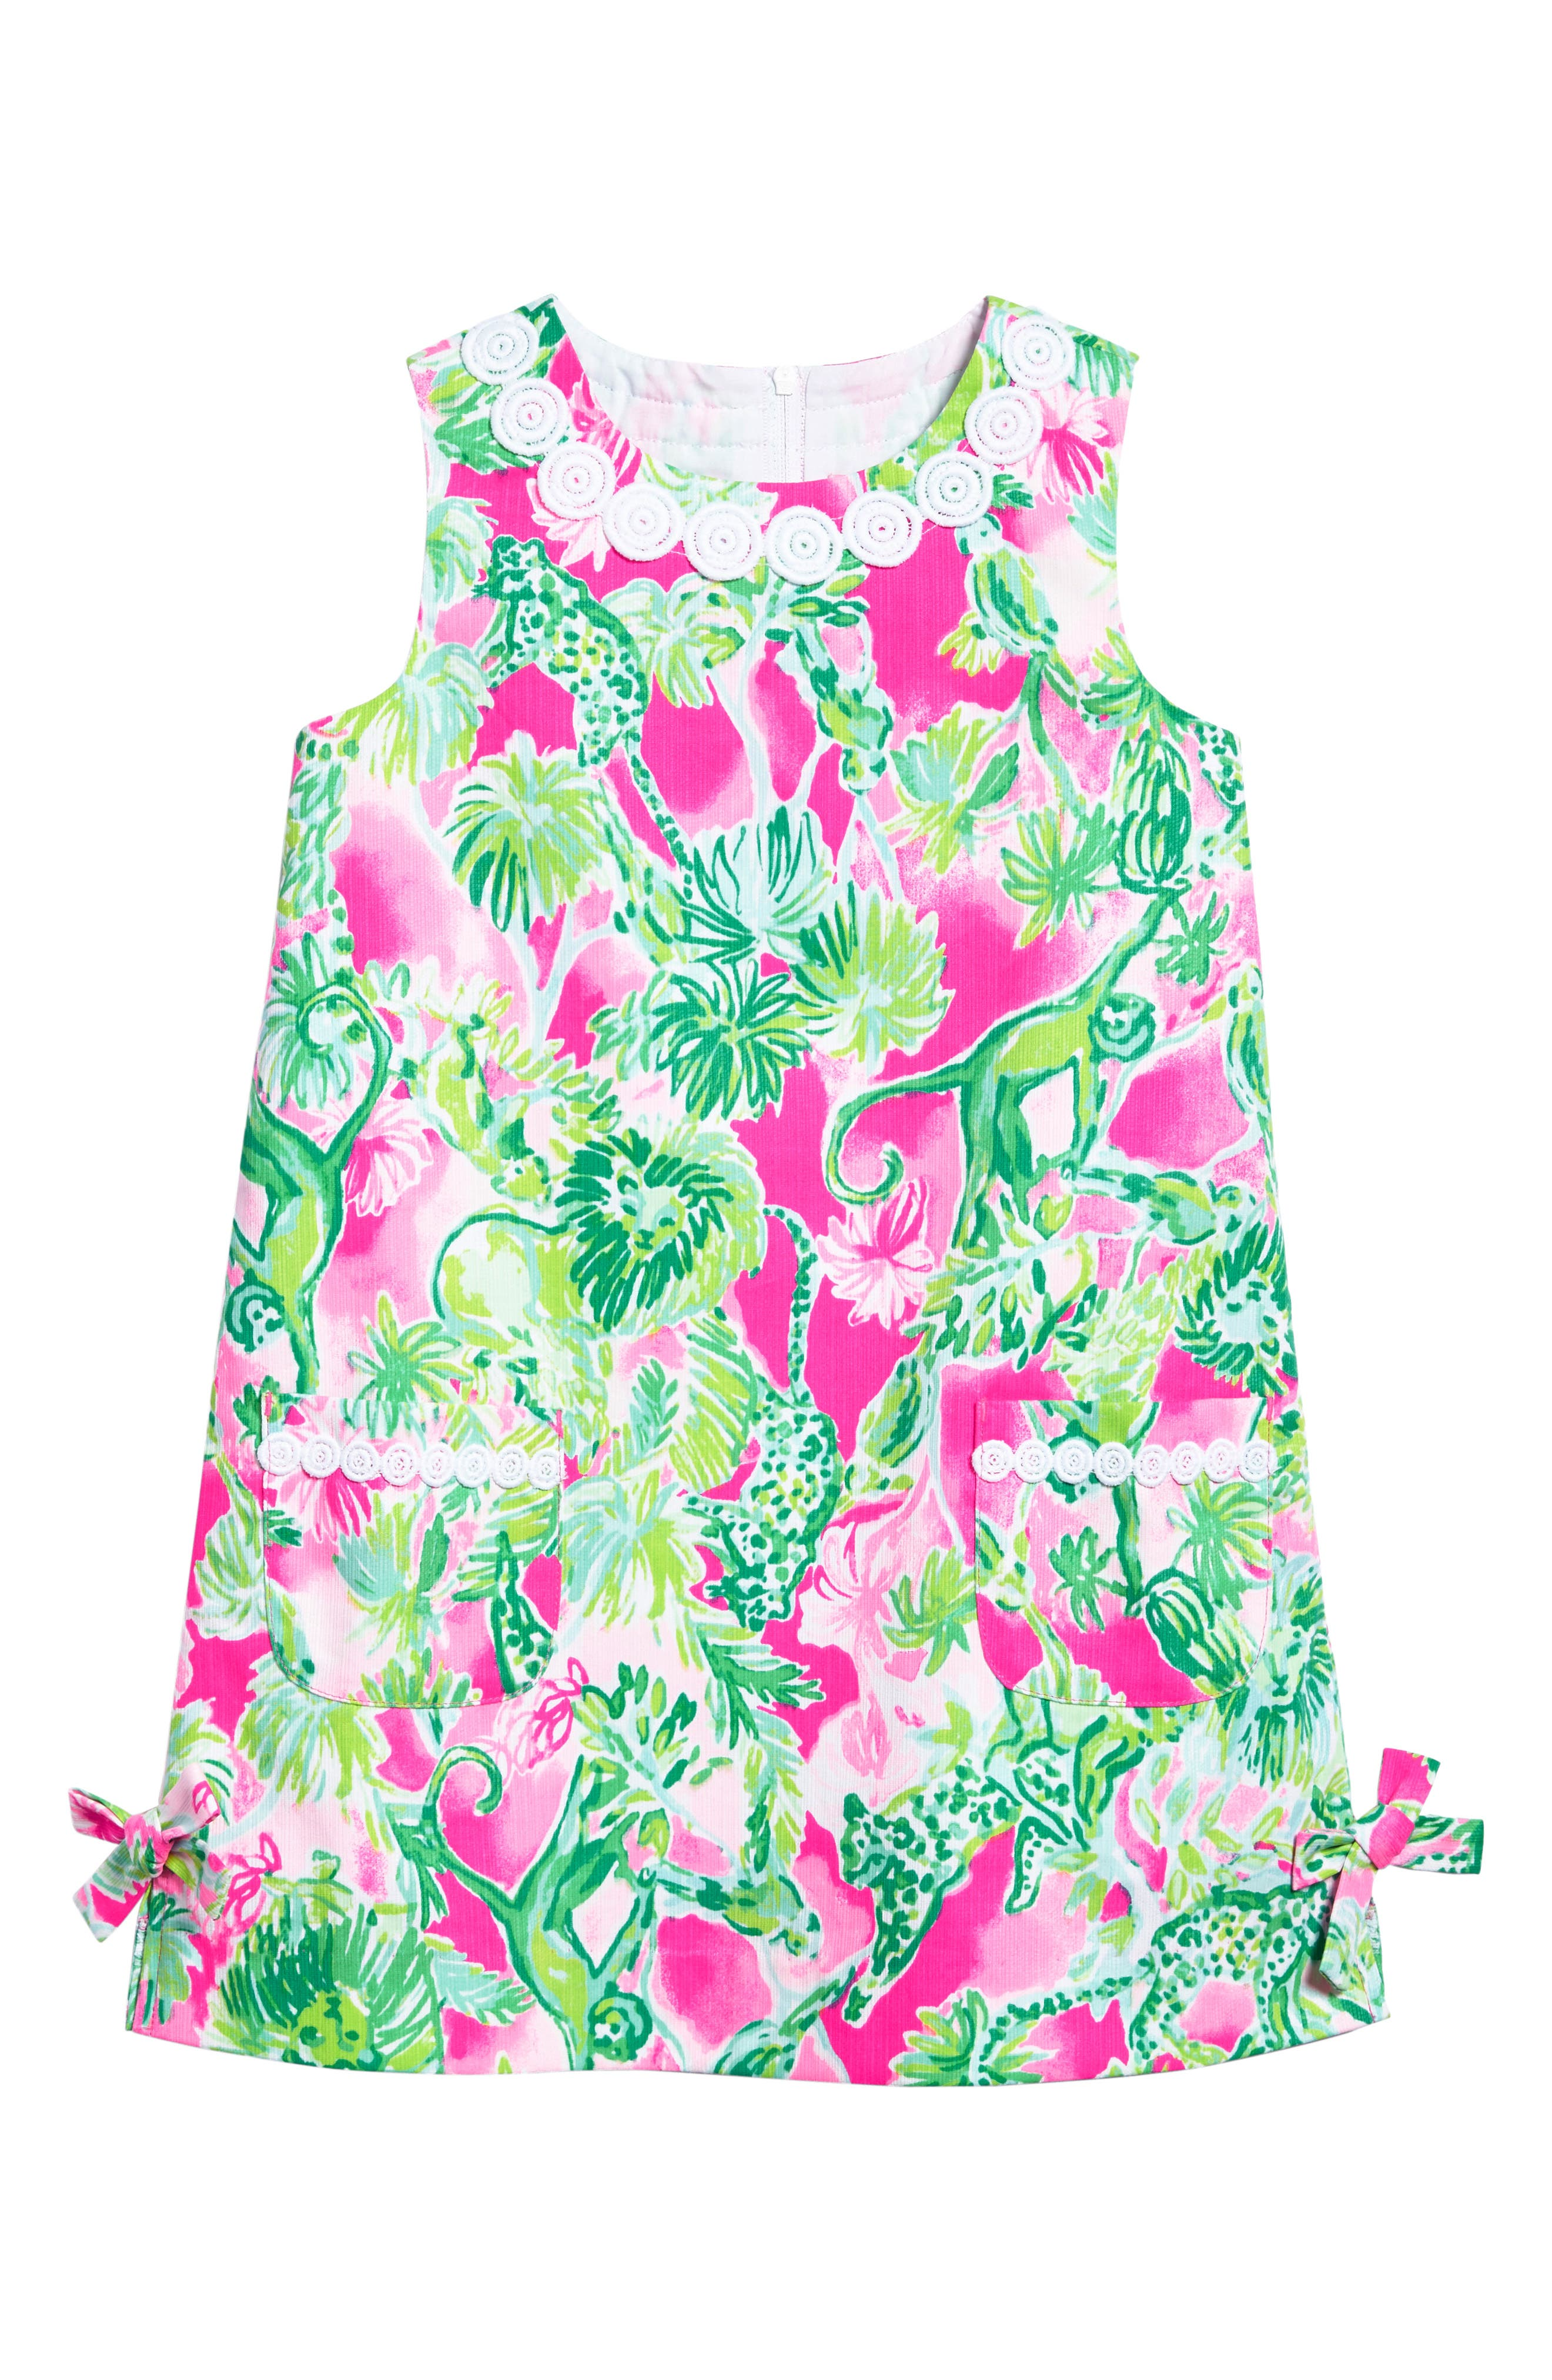 Little Lilly Shift Dress,                             Main thumbnail 1, color,                             655